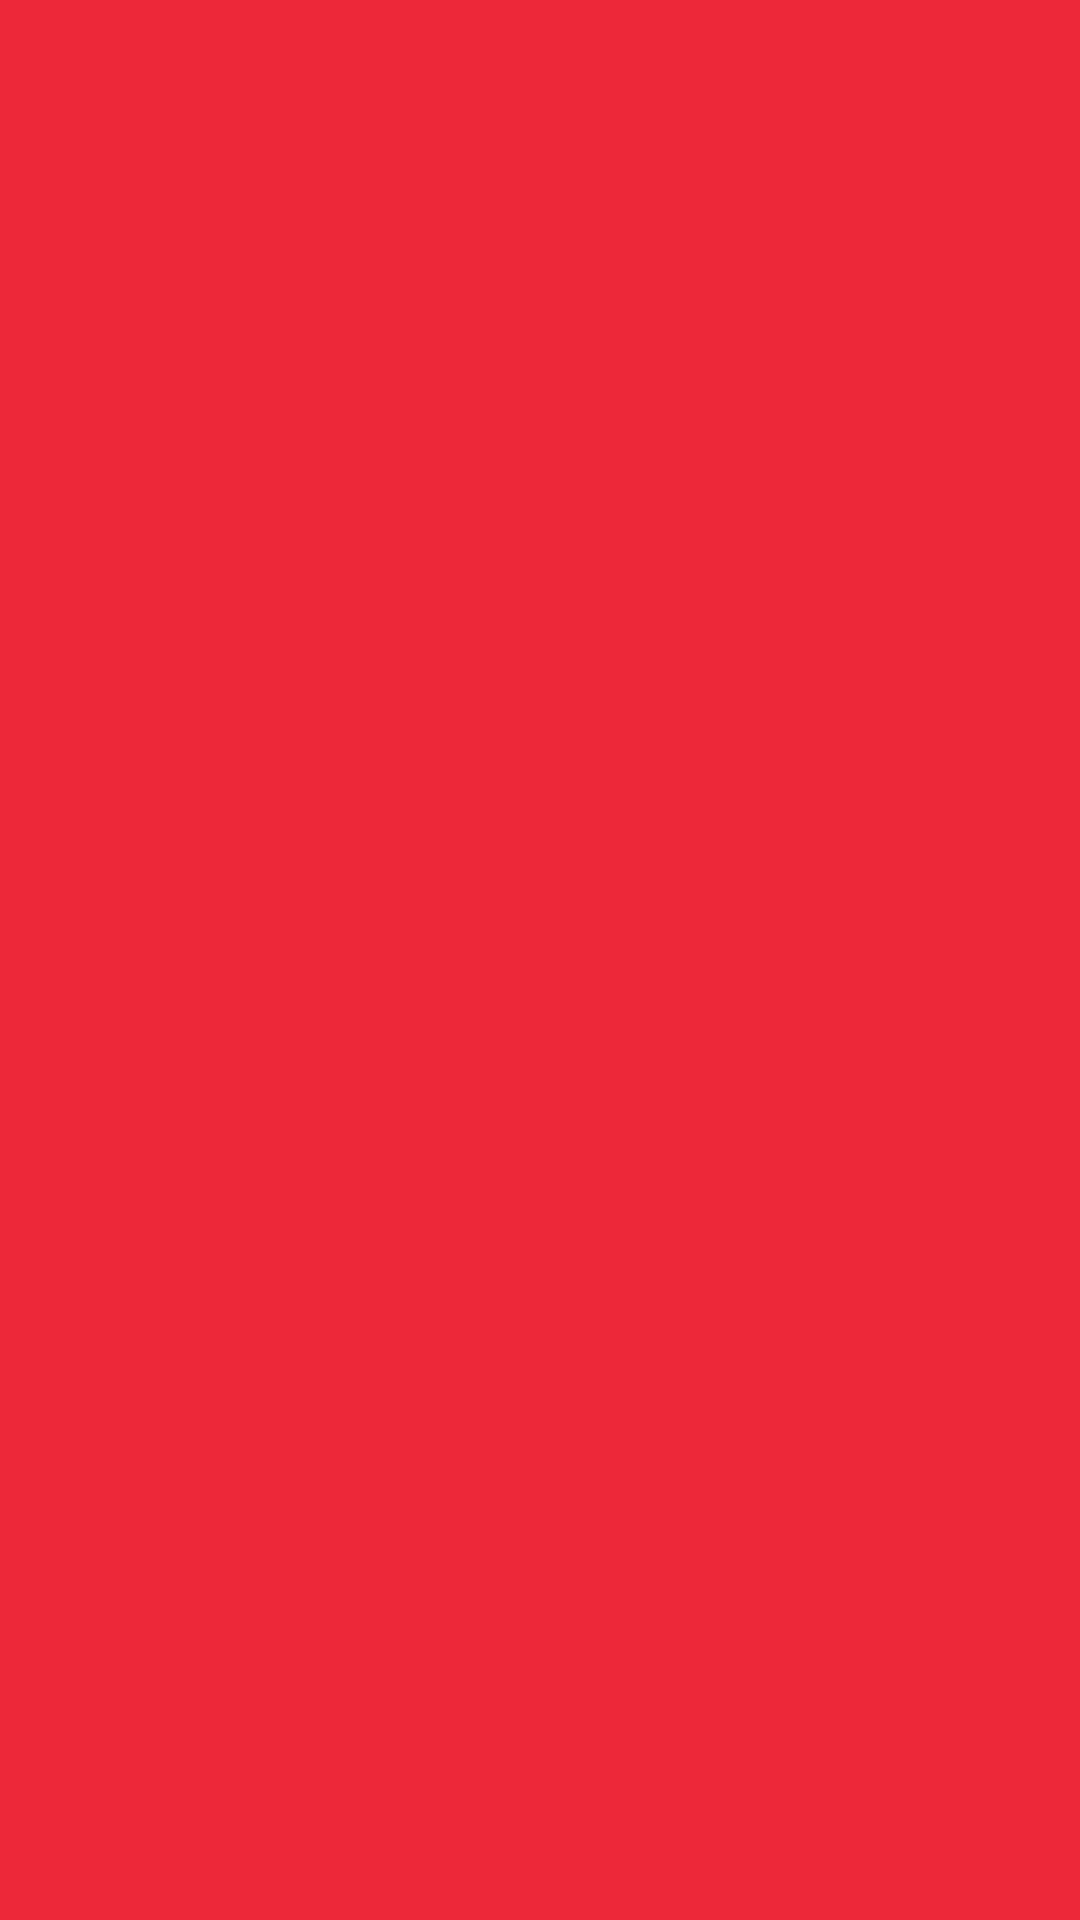 1080x1920 Imperial Red Solid Color Background